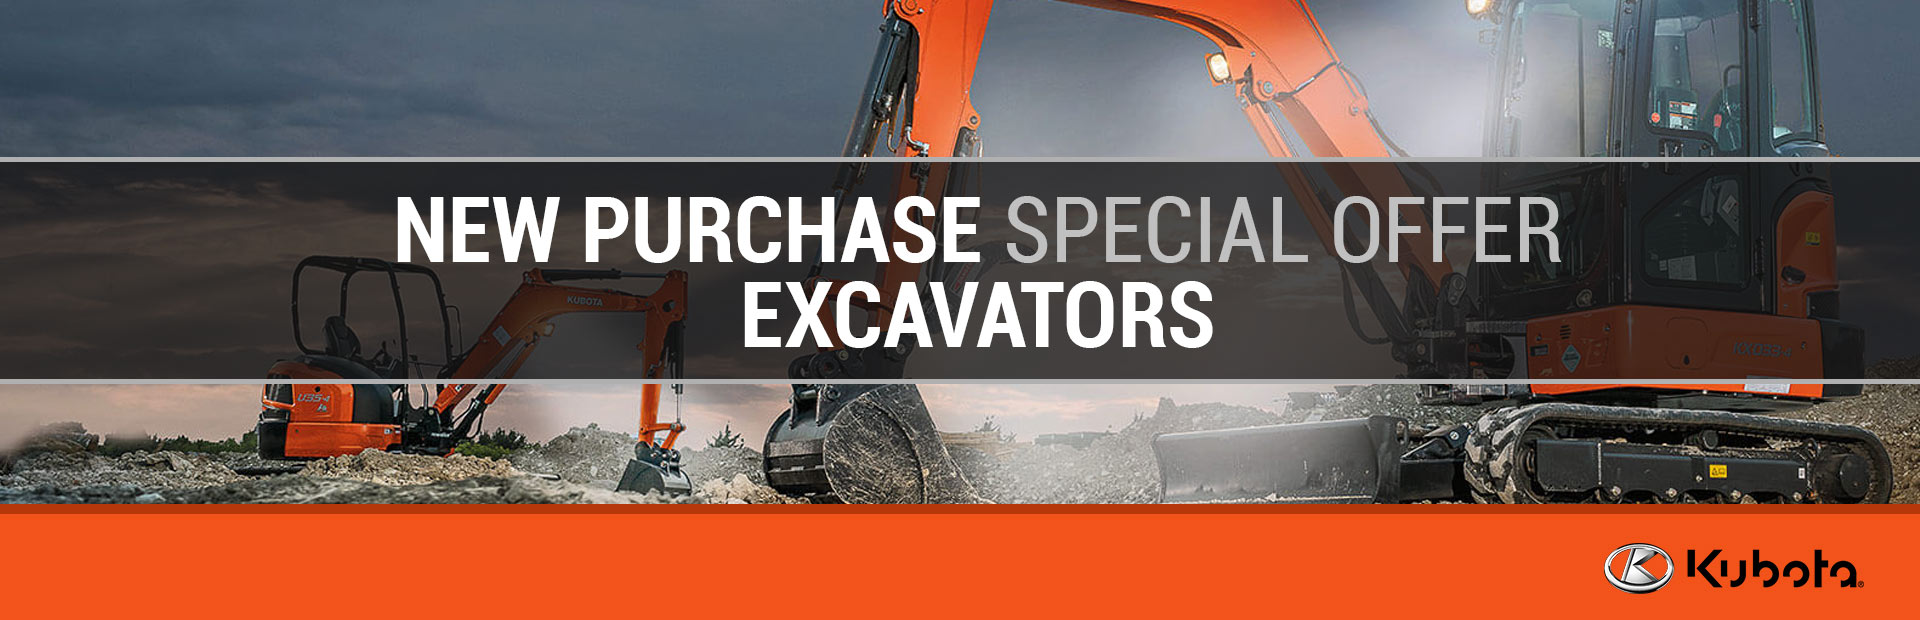 Kubota: New Purchase Special Offer - Excavators